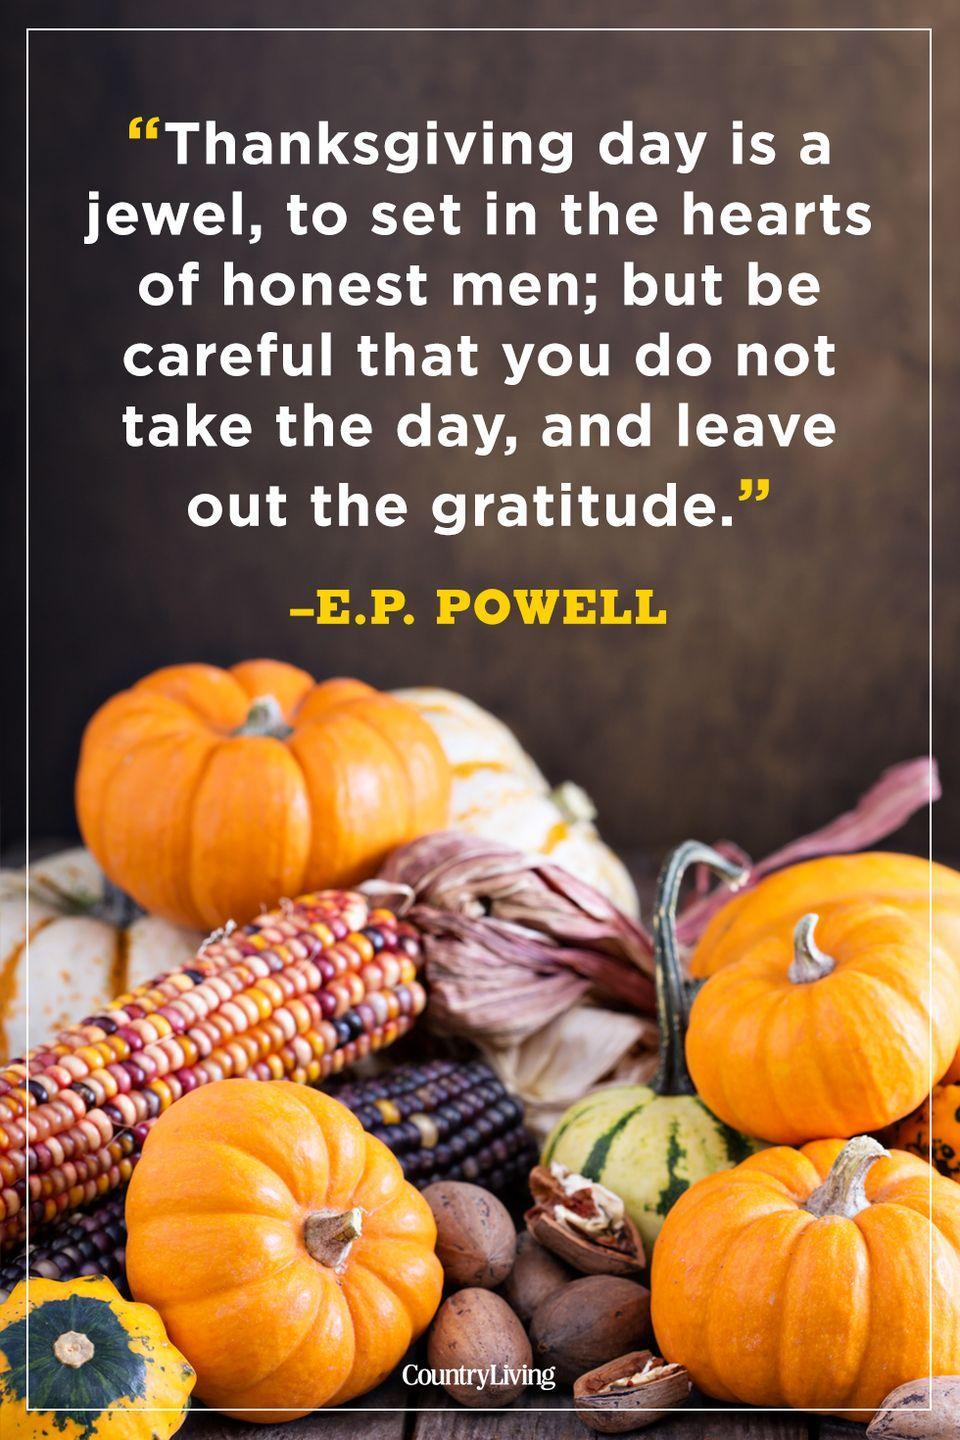 """<p>""""Thanksgiving day is a jewel, to set in the hearts of honest men; but be careful that you do not take the day, and leave out the gratitude.""""</p>"""